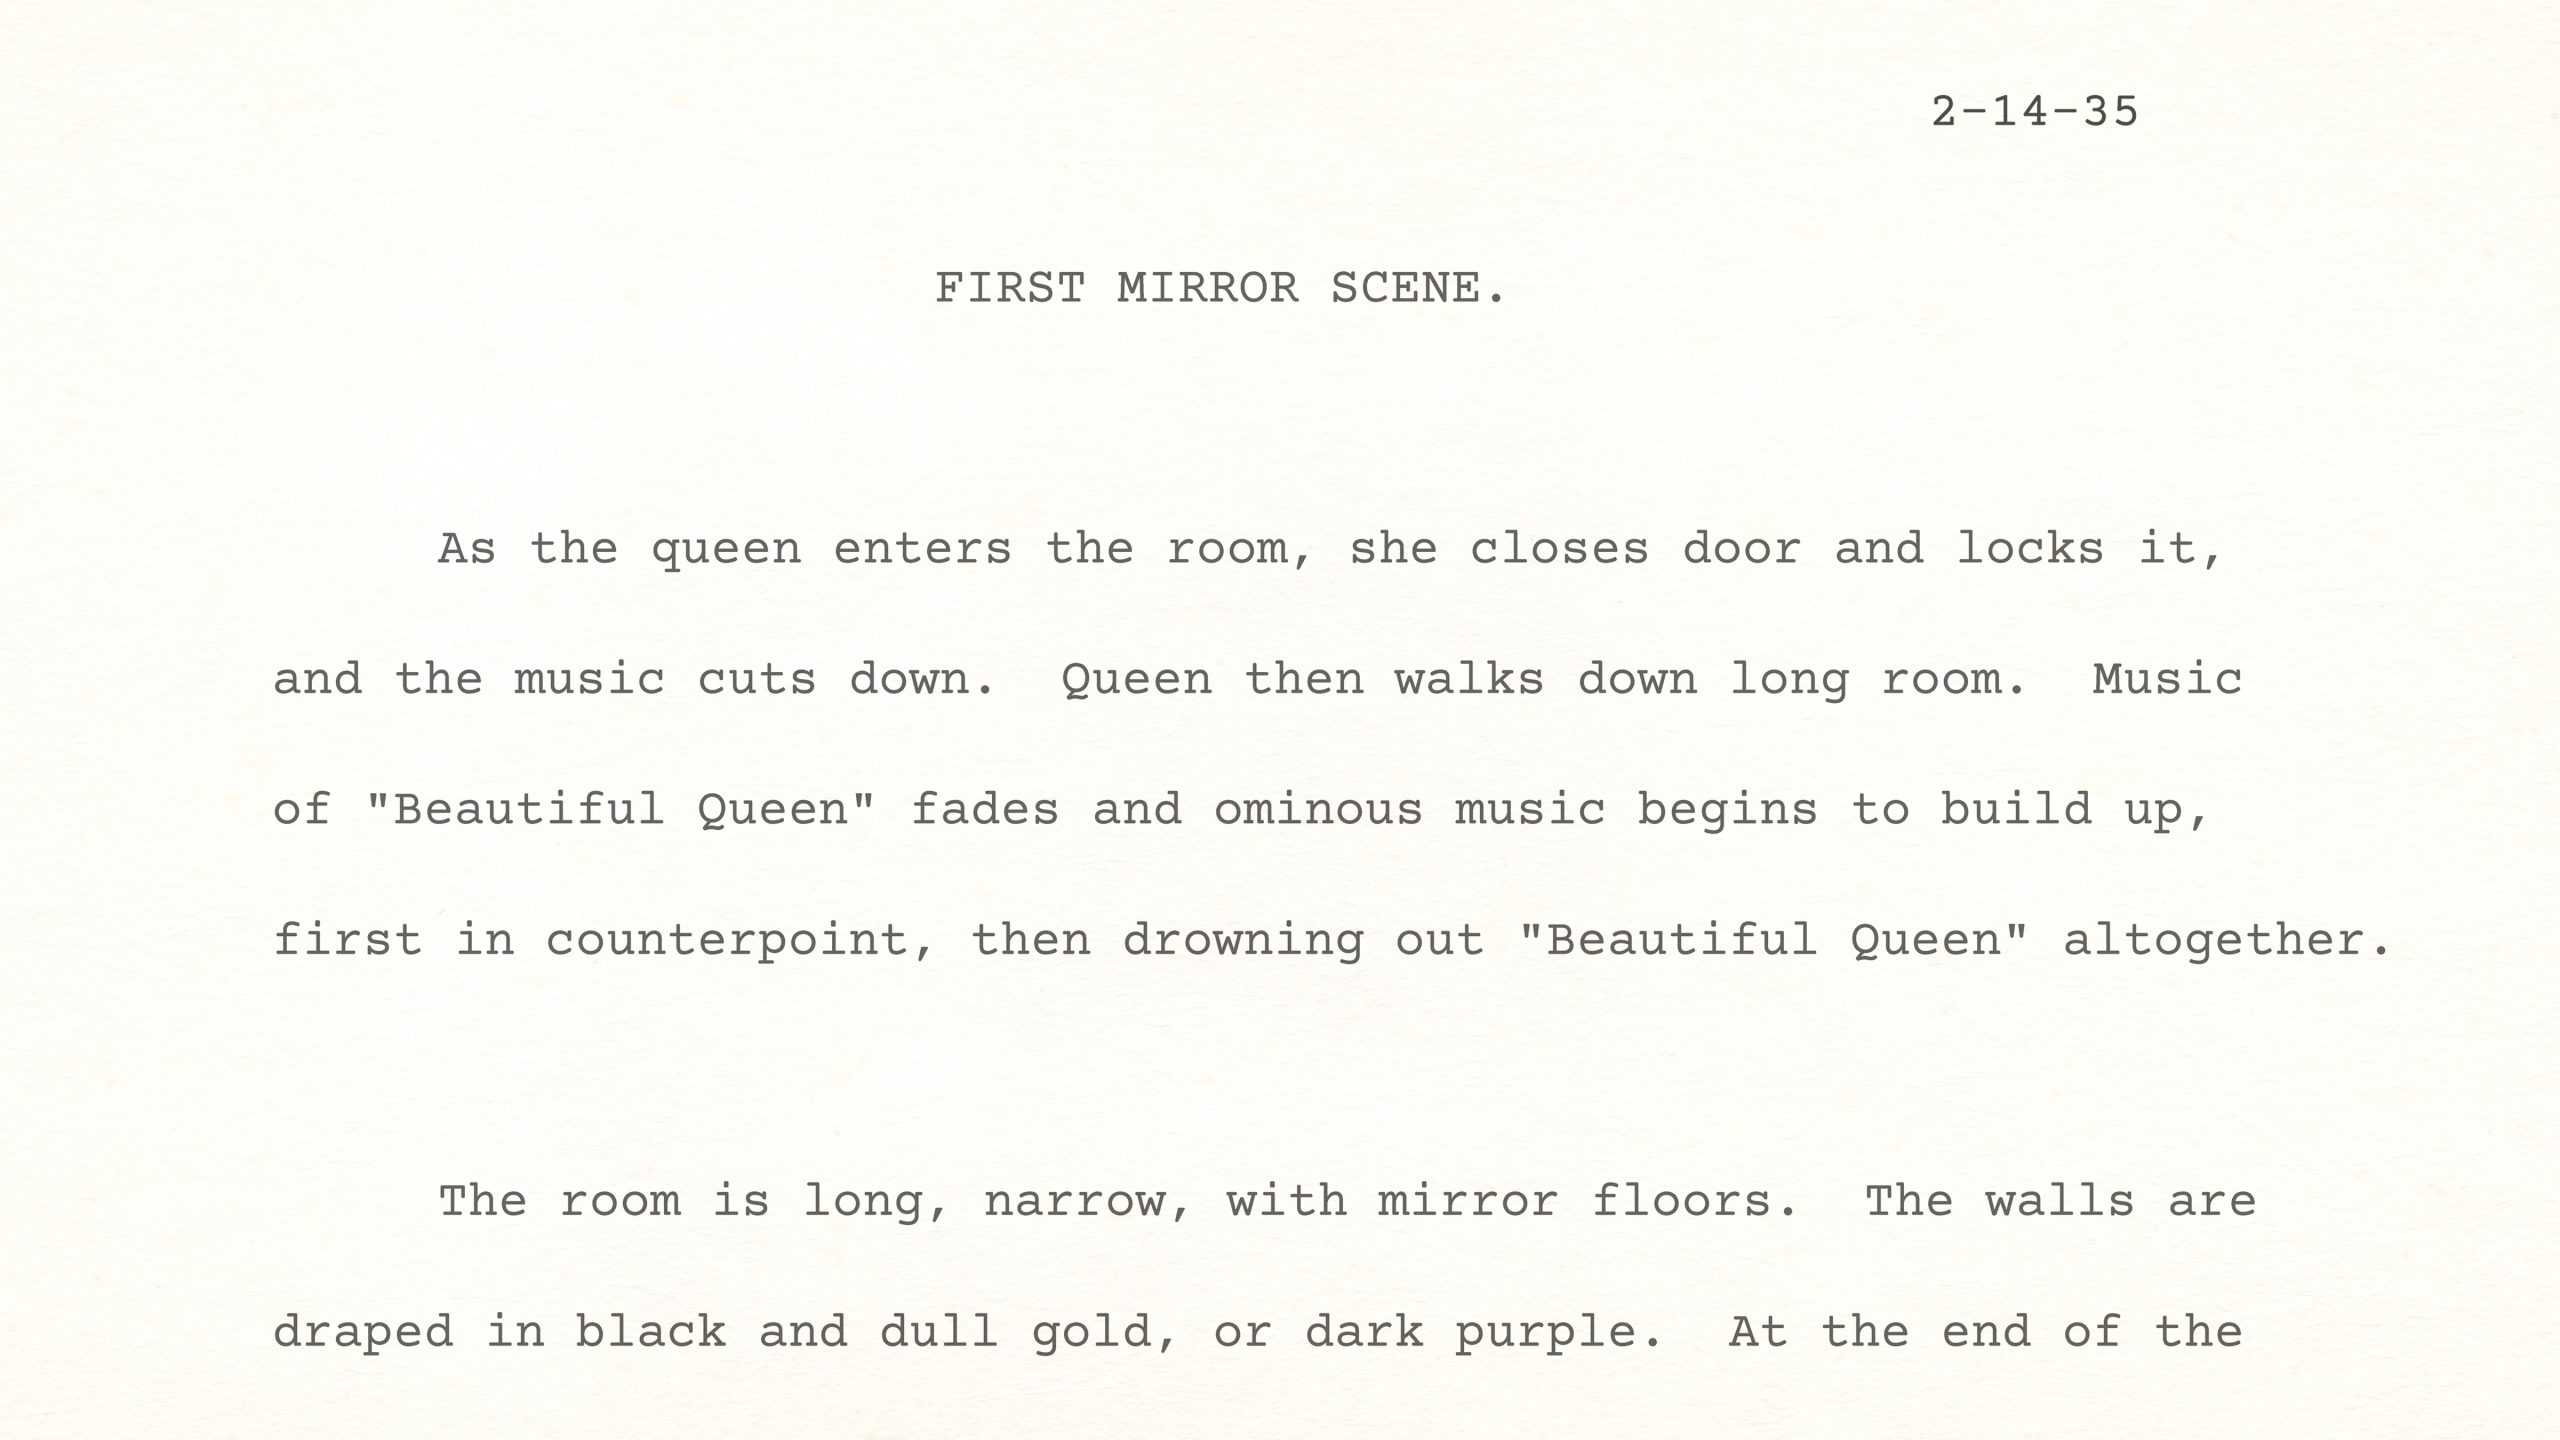 Snow White and the Seven Dwarfs — First Mirror Scene, February 14, 1935